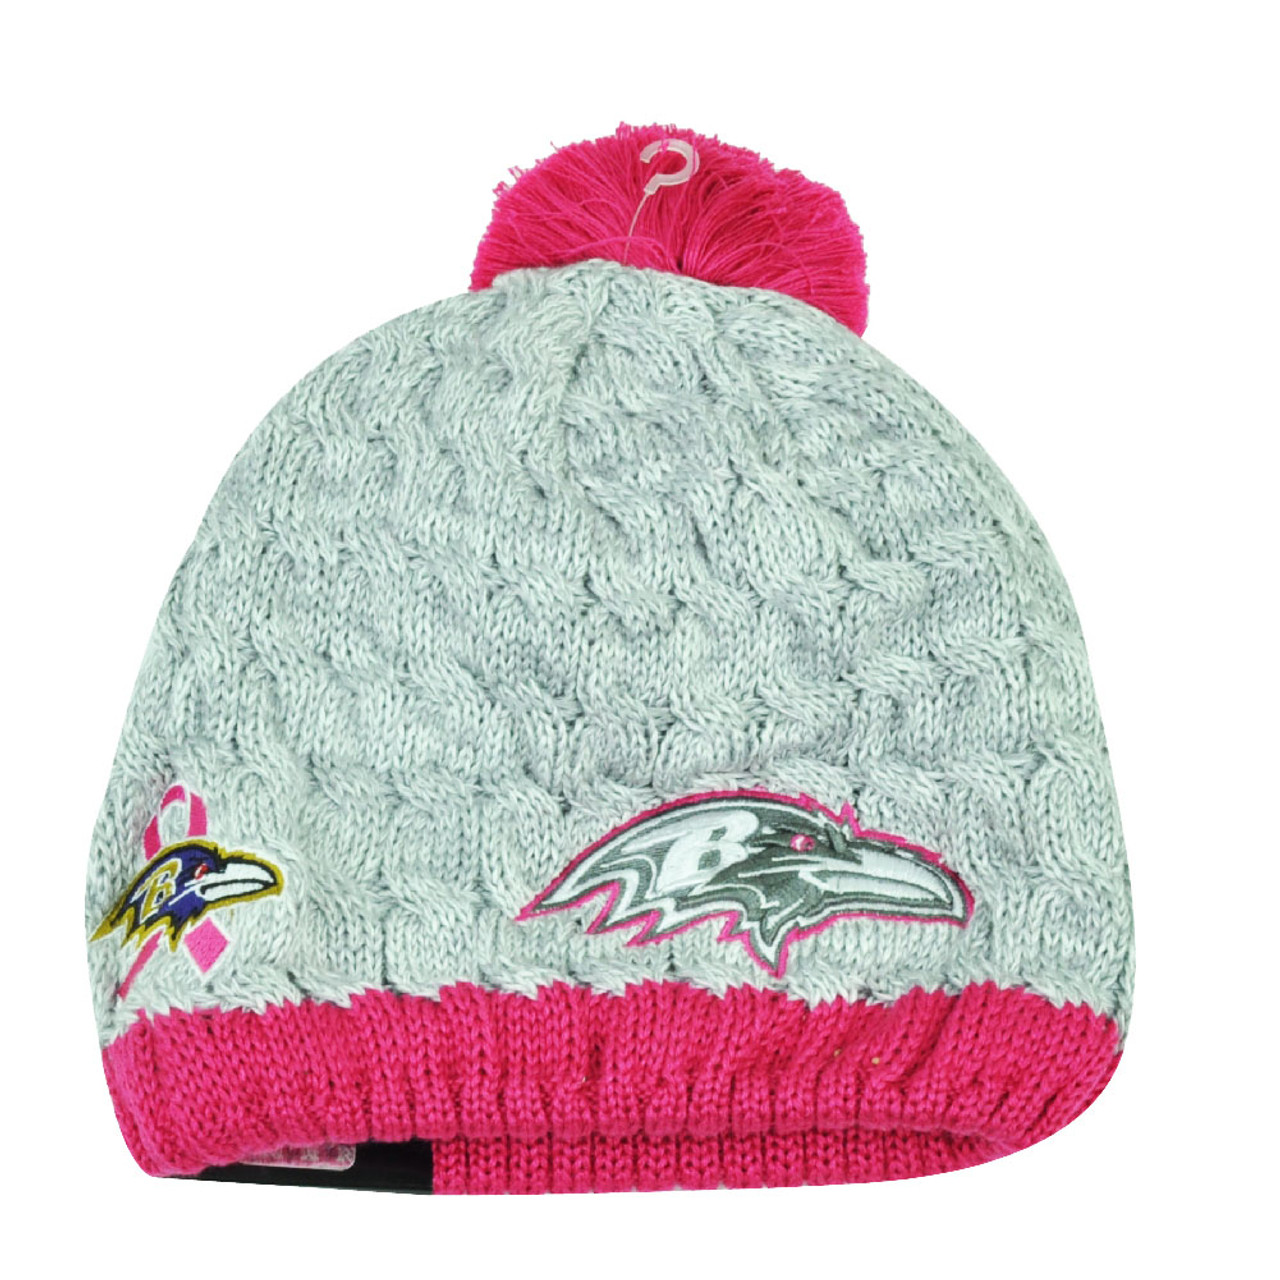 reputable site 4b293 250c2 NFL New Era Breast Cancer Awareness Knit Beanie Baltimore Ravens Pink  Womens Hat